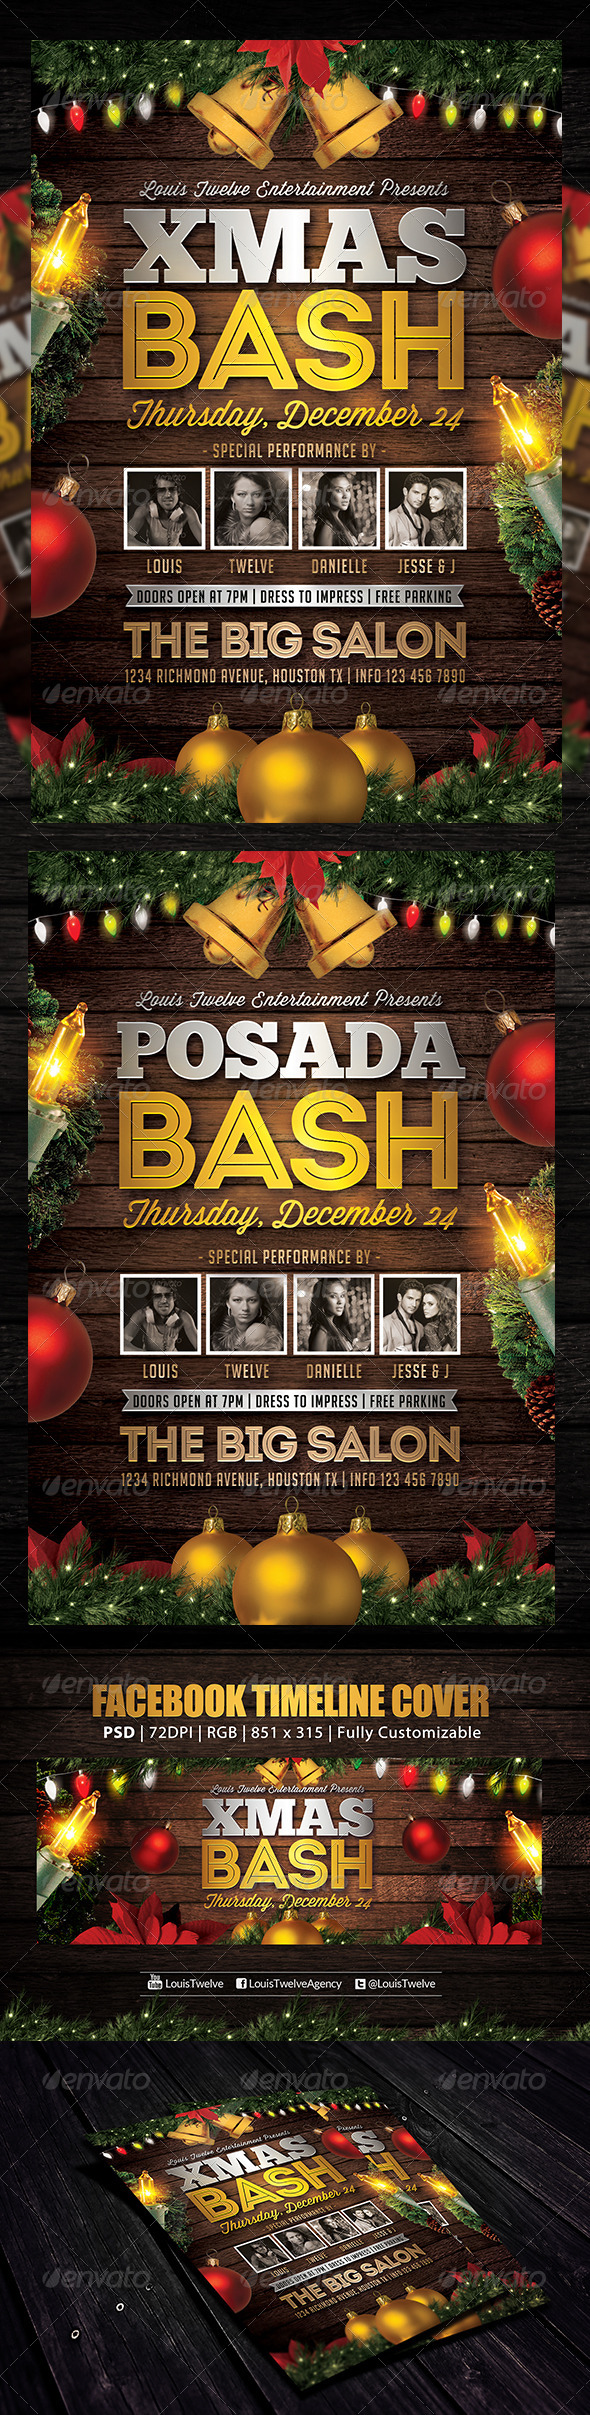 GraphicRiver Christmas Bash 4 Flyer & FB Cover 6244741